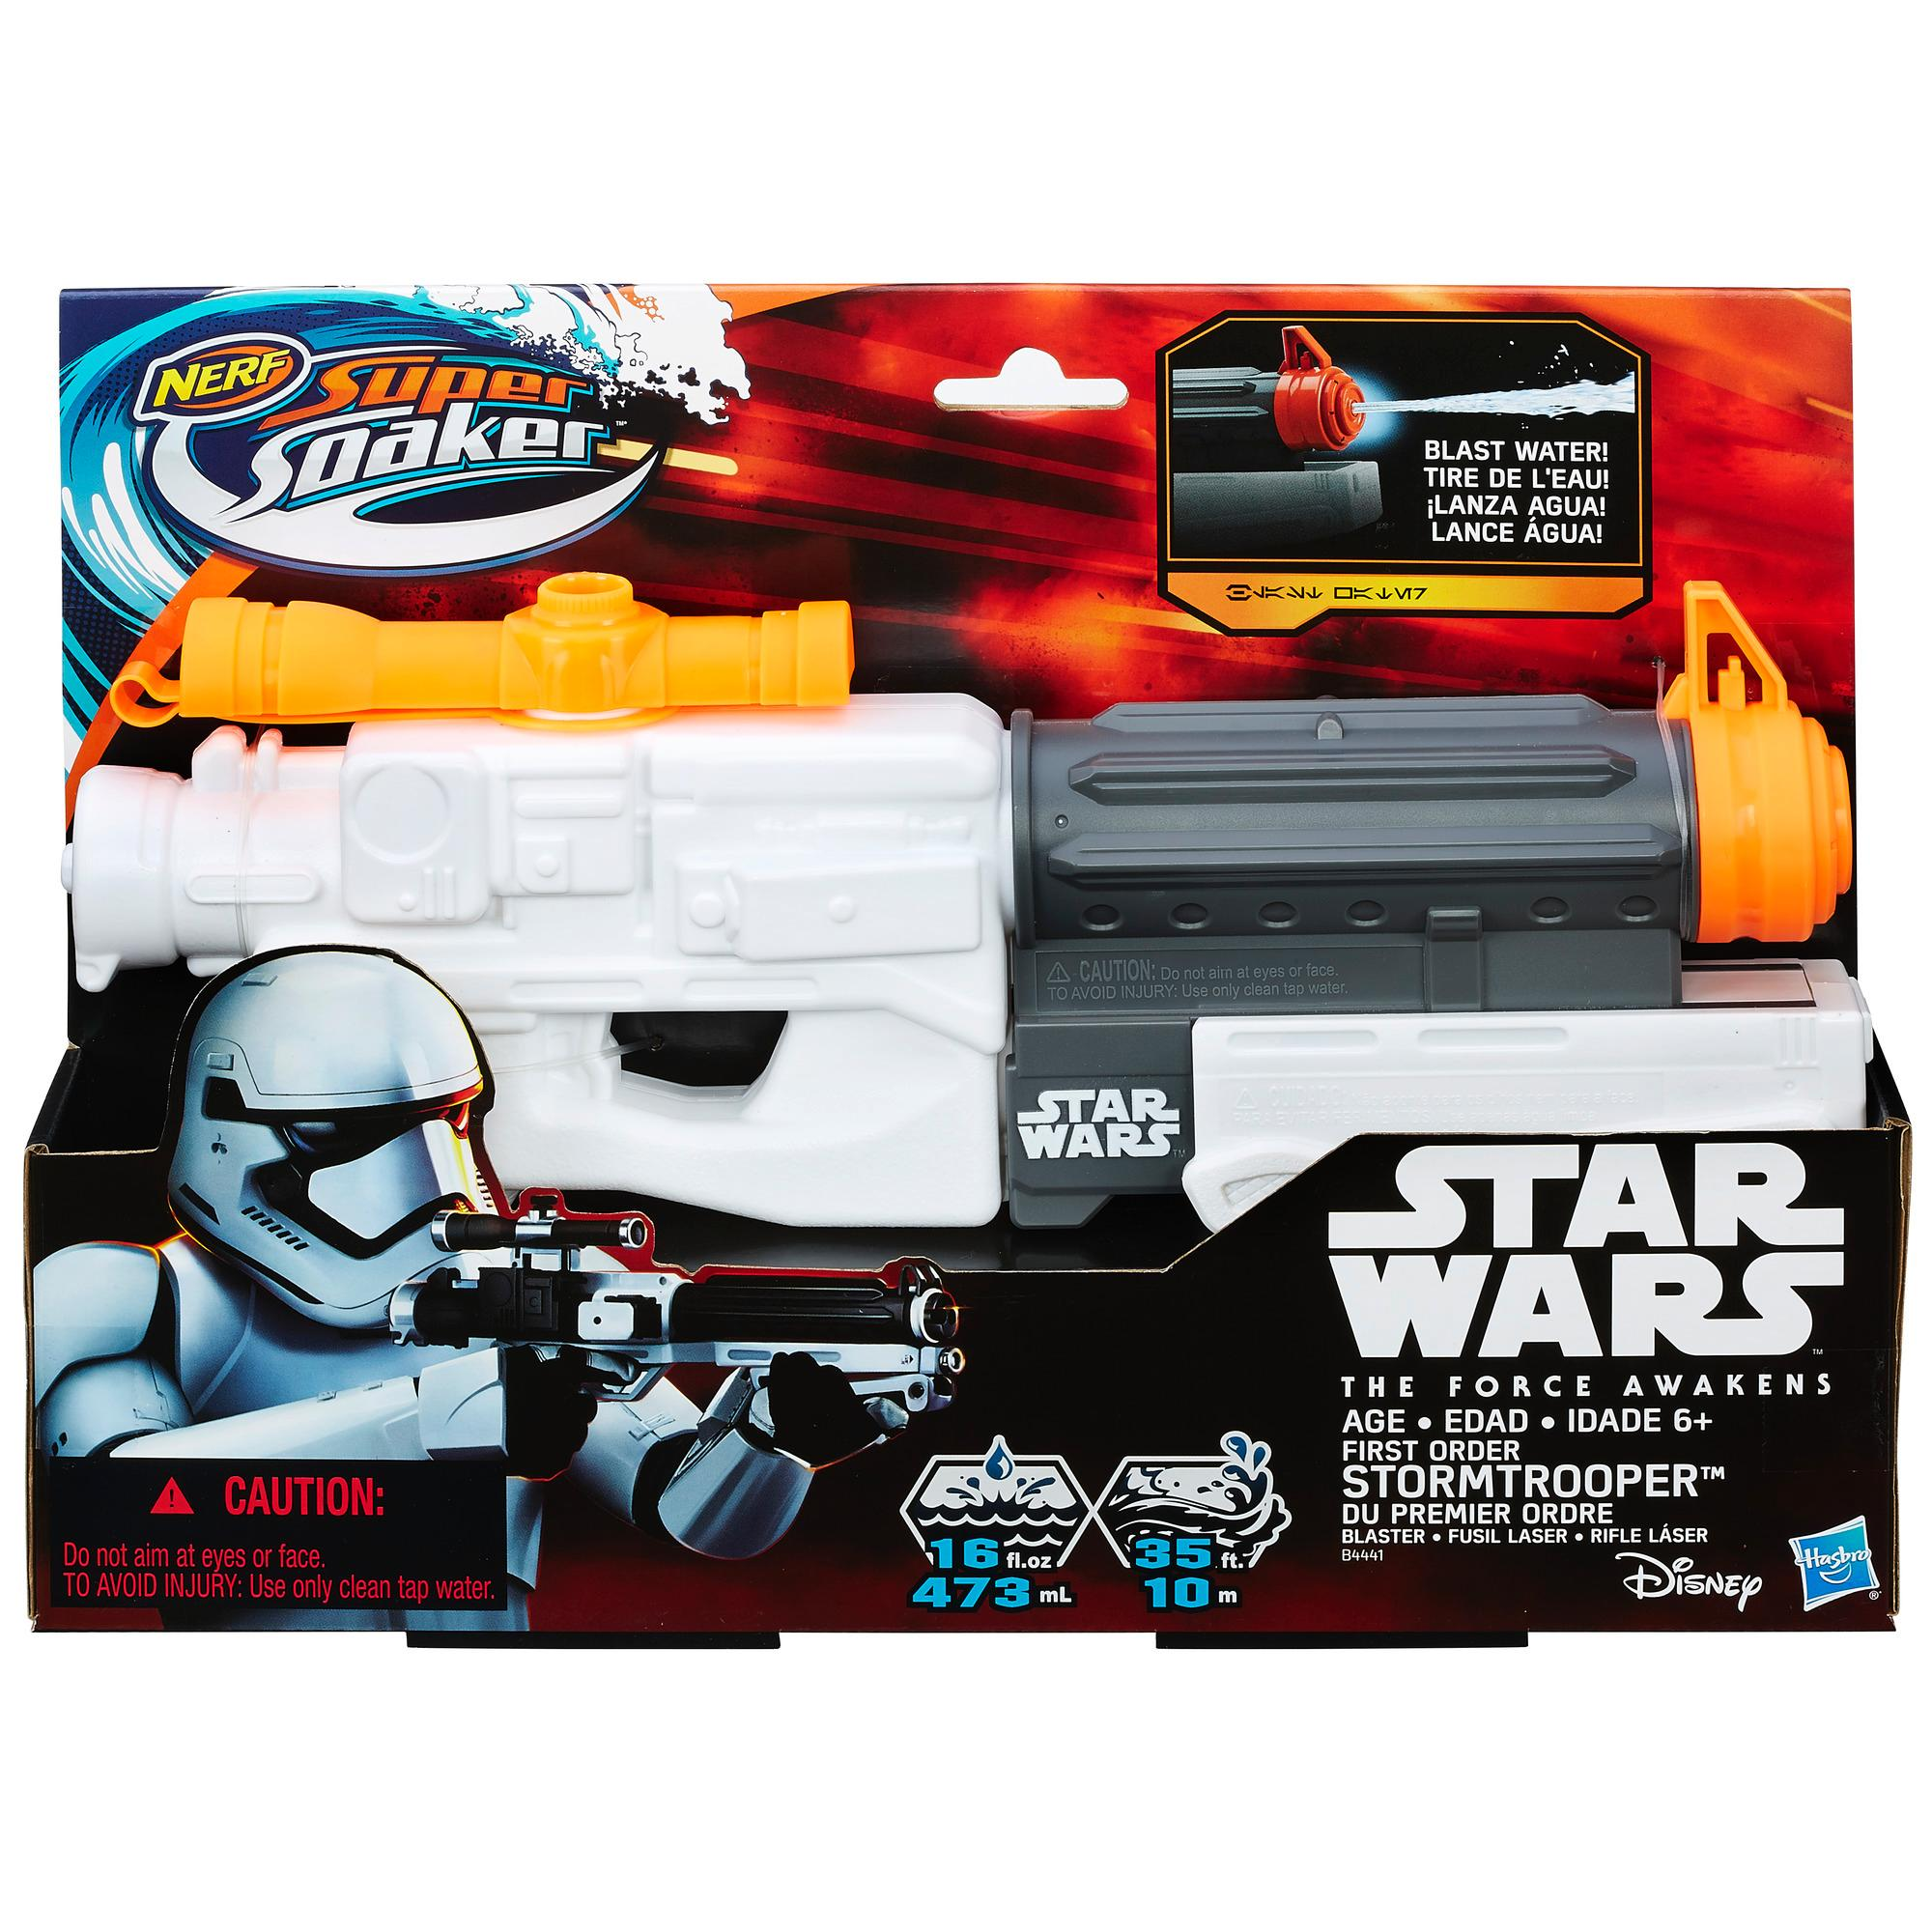 Star Wars E7 Super Soaker Stormtrooper Blaster